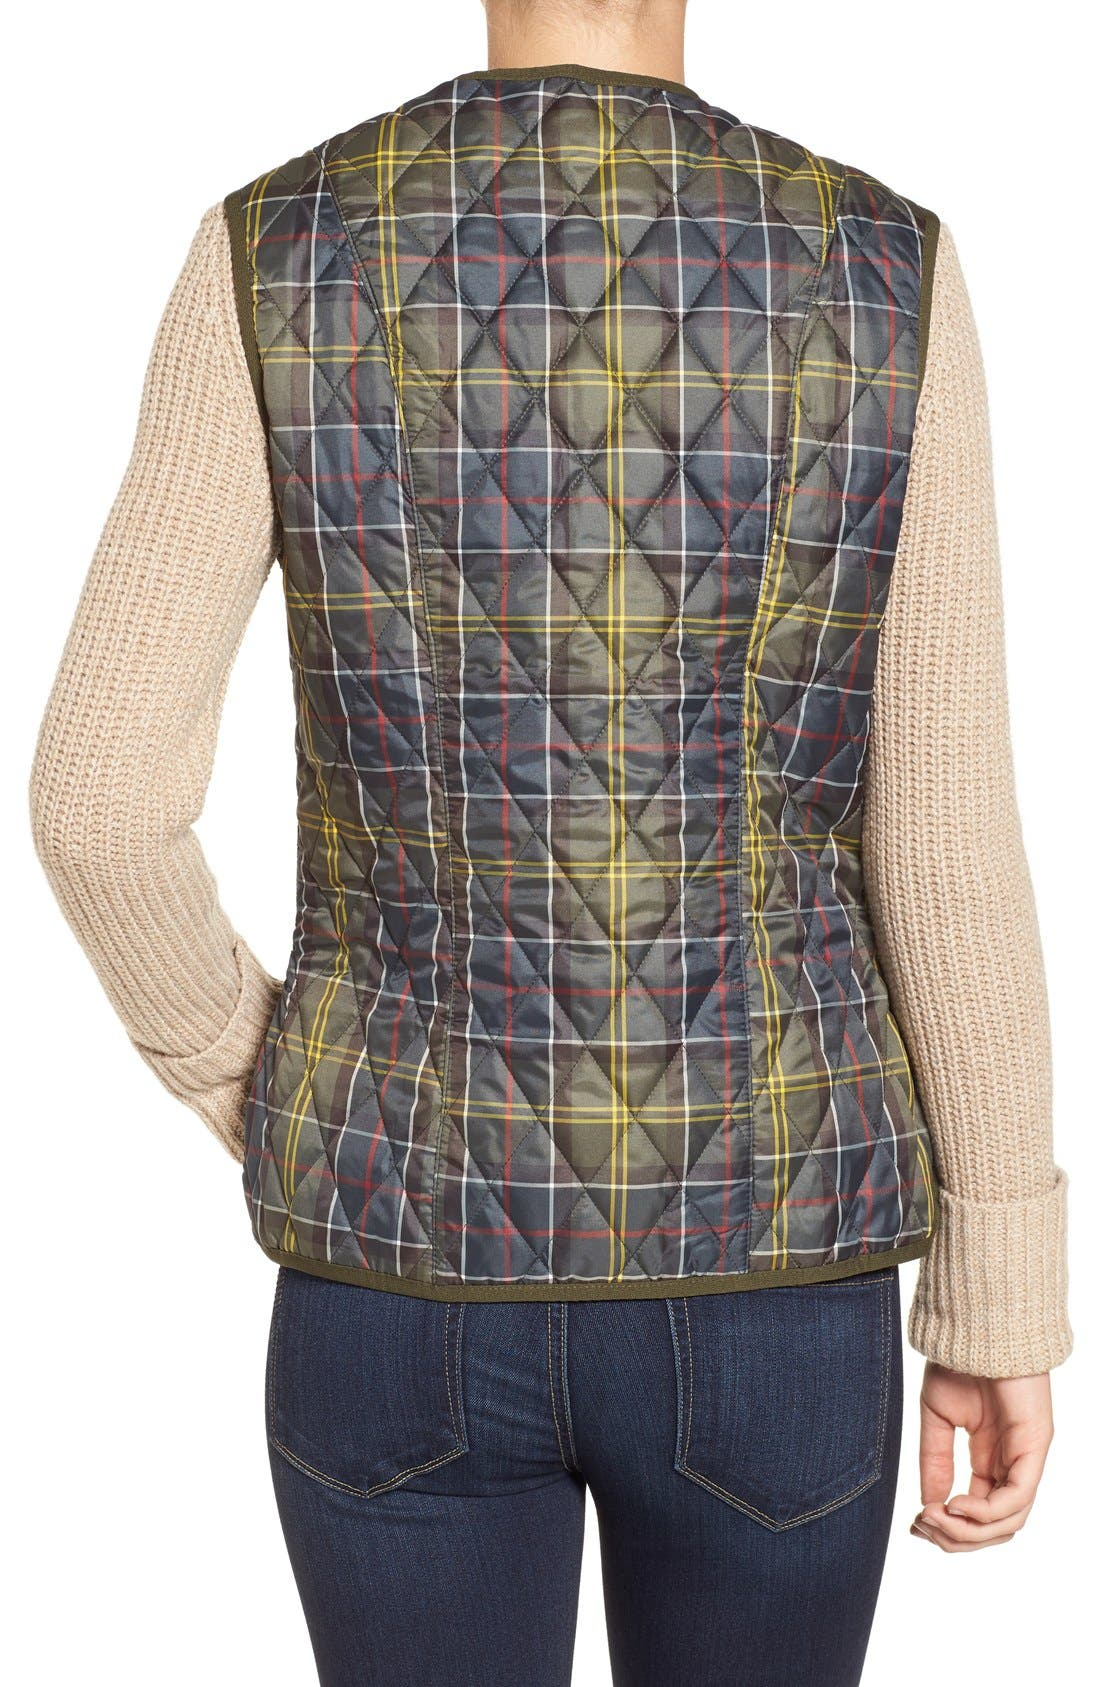 'Betty' Tartan Print Quilted Liner,                             Alternate thumbnail 2, color,                             362